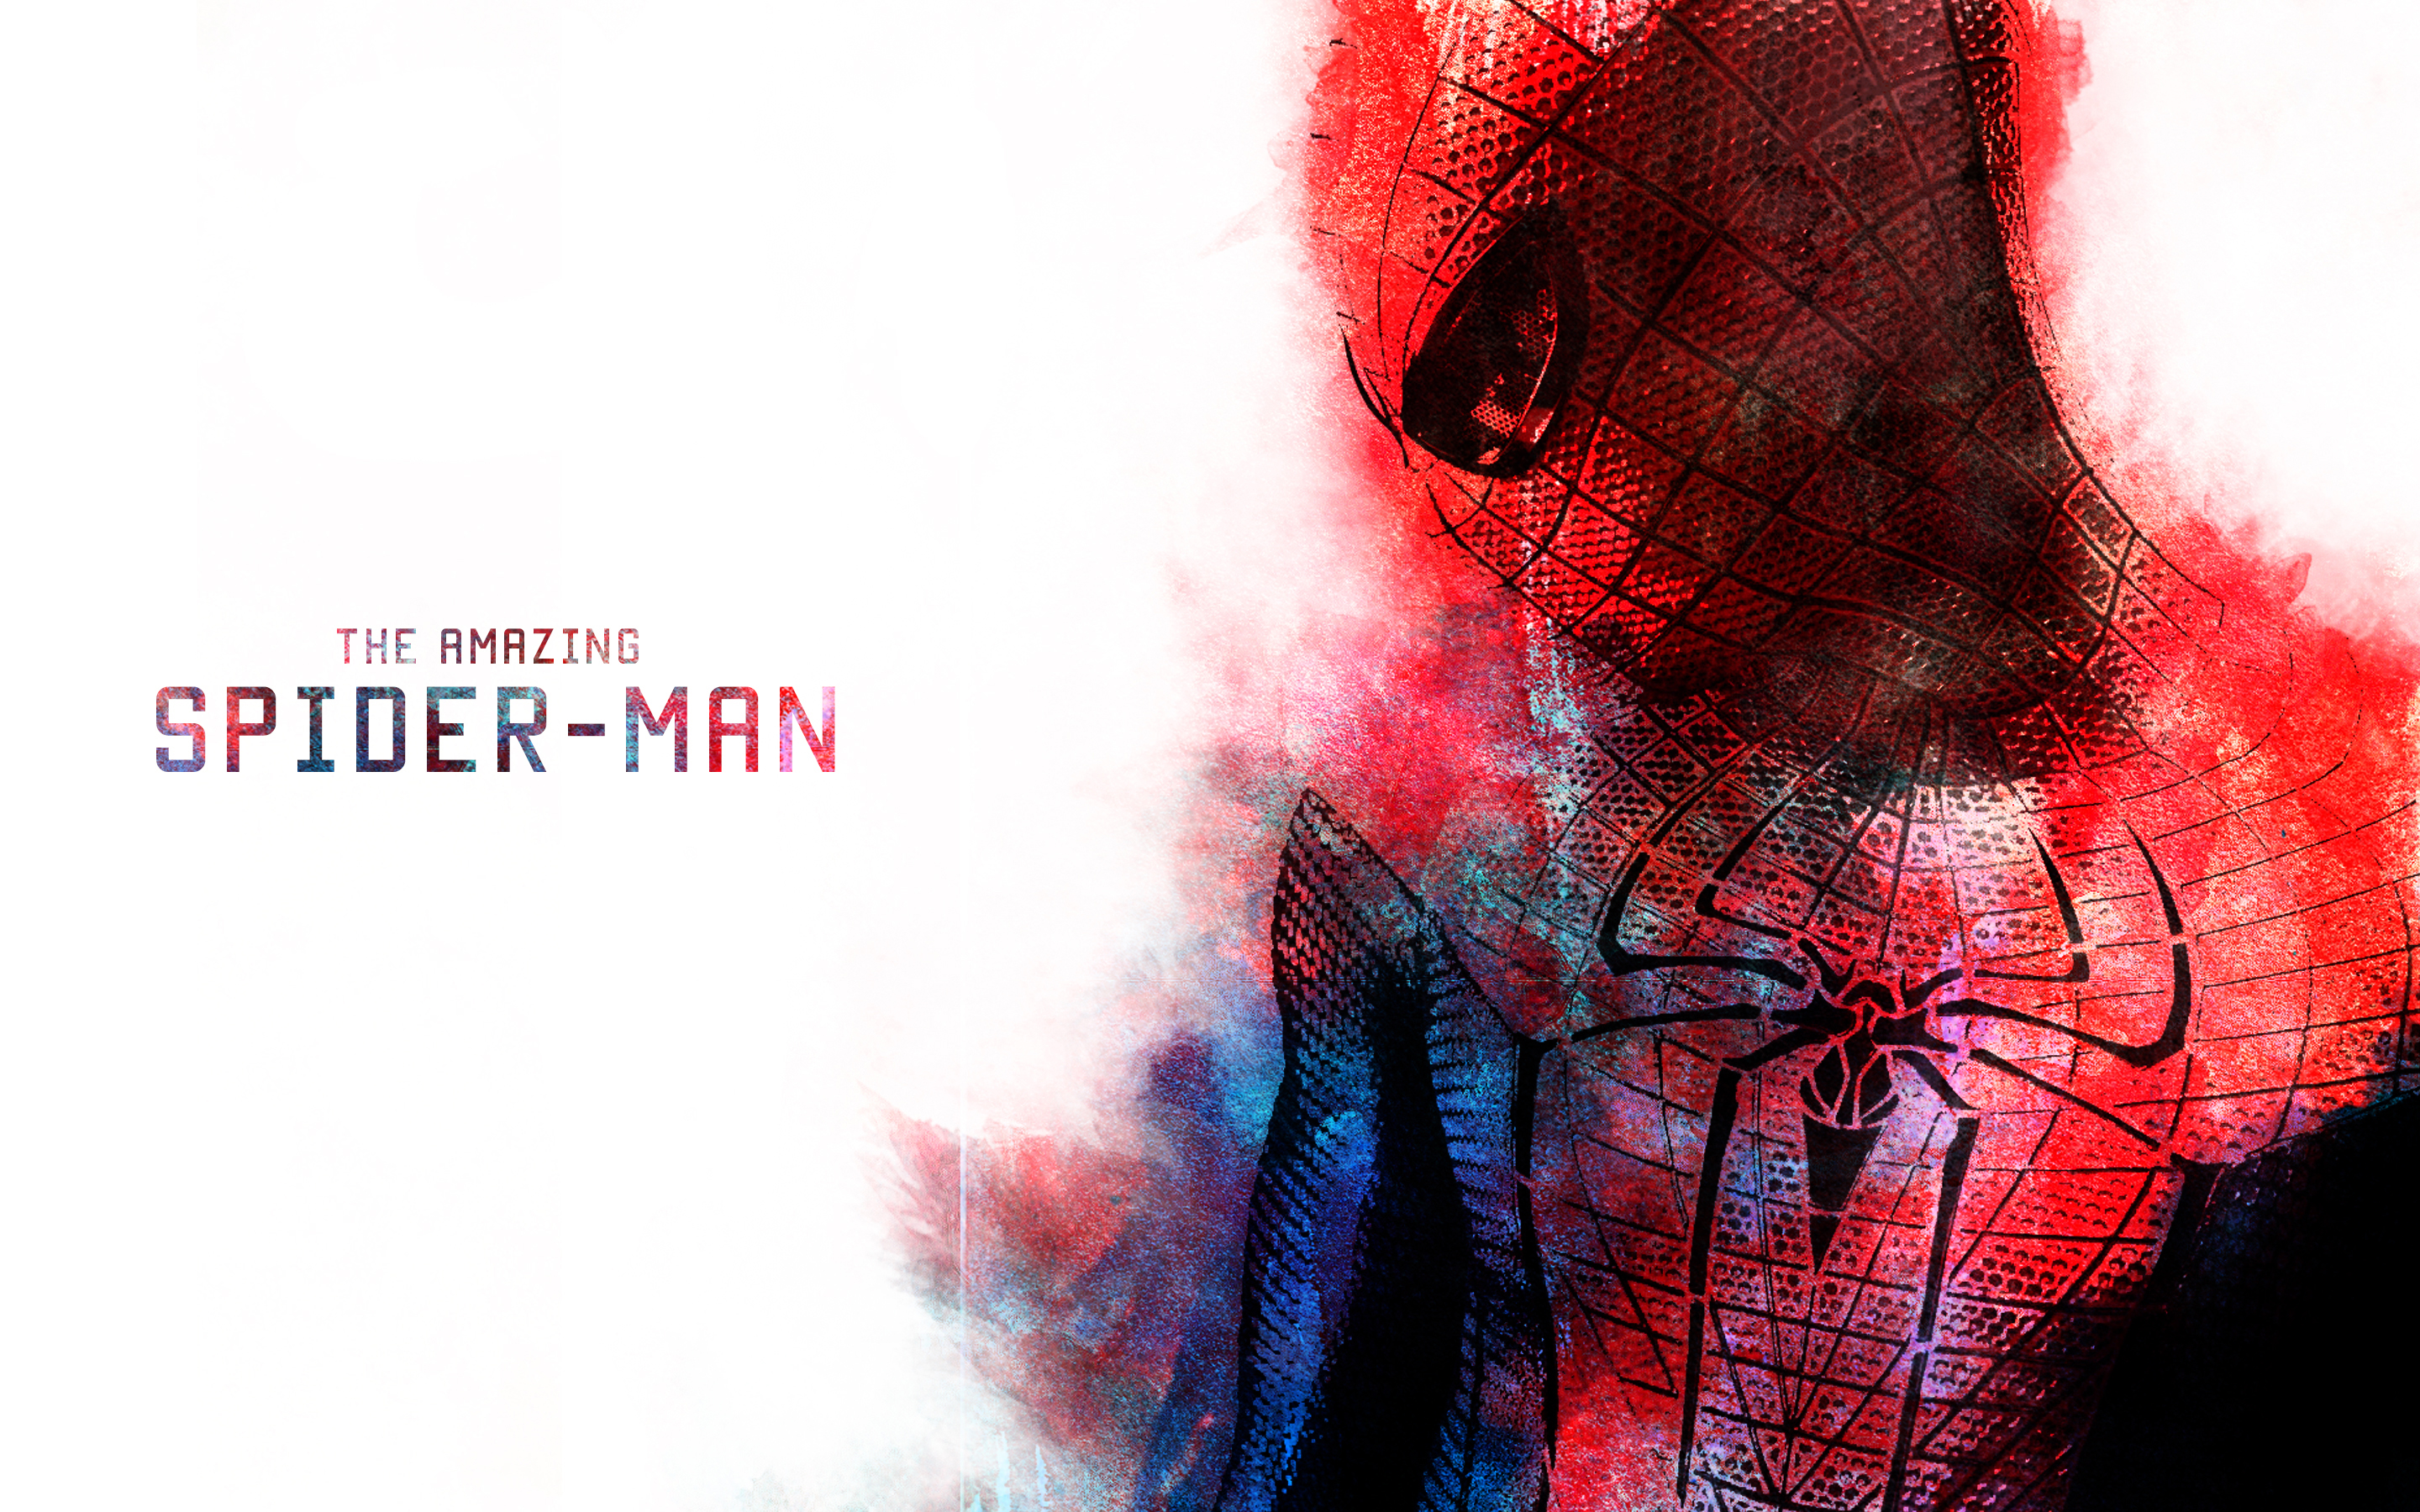 Download The Amazing Spider Man HD Wallpaper Image id 1941 2880x1800